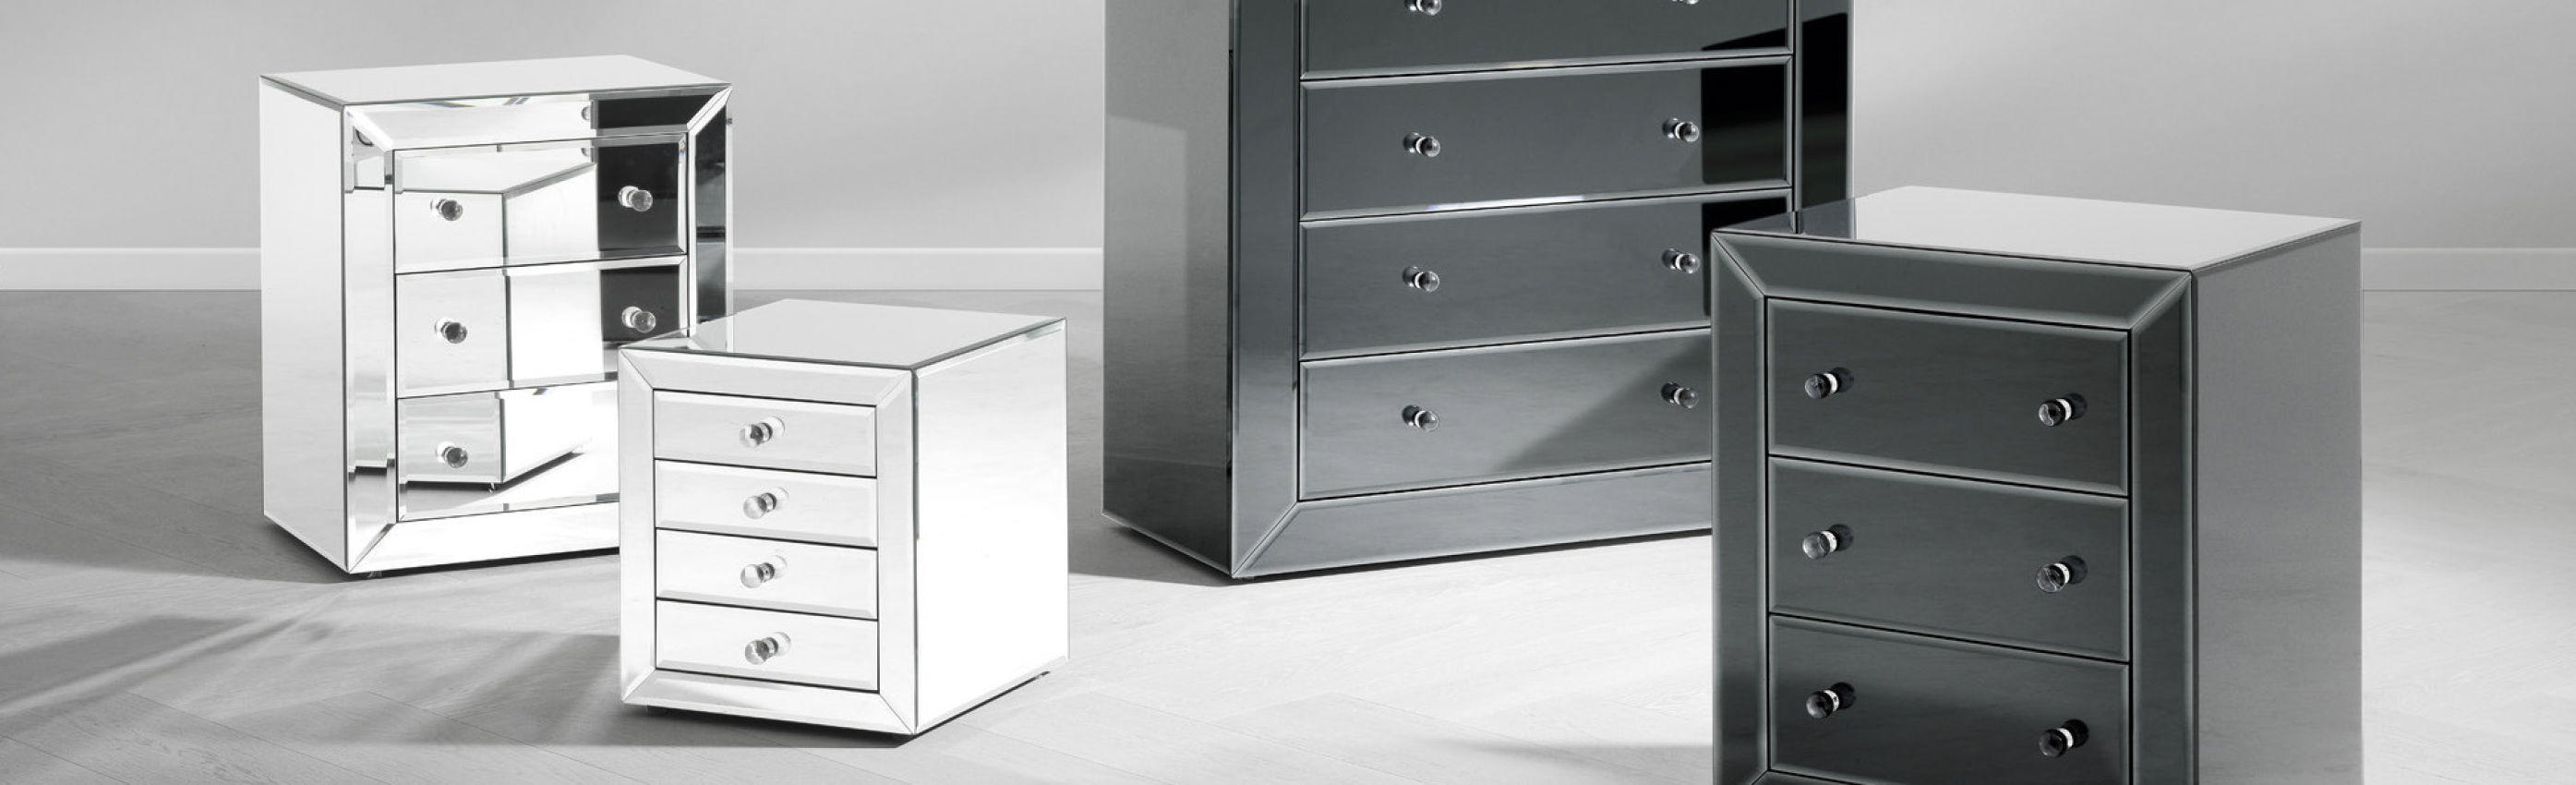 Cabinets, dressers & chests